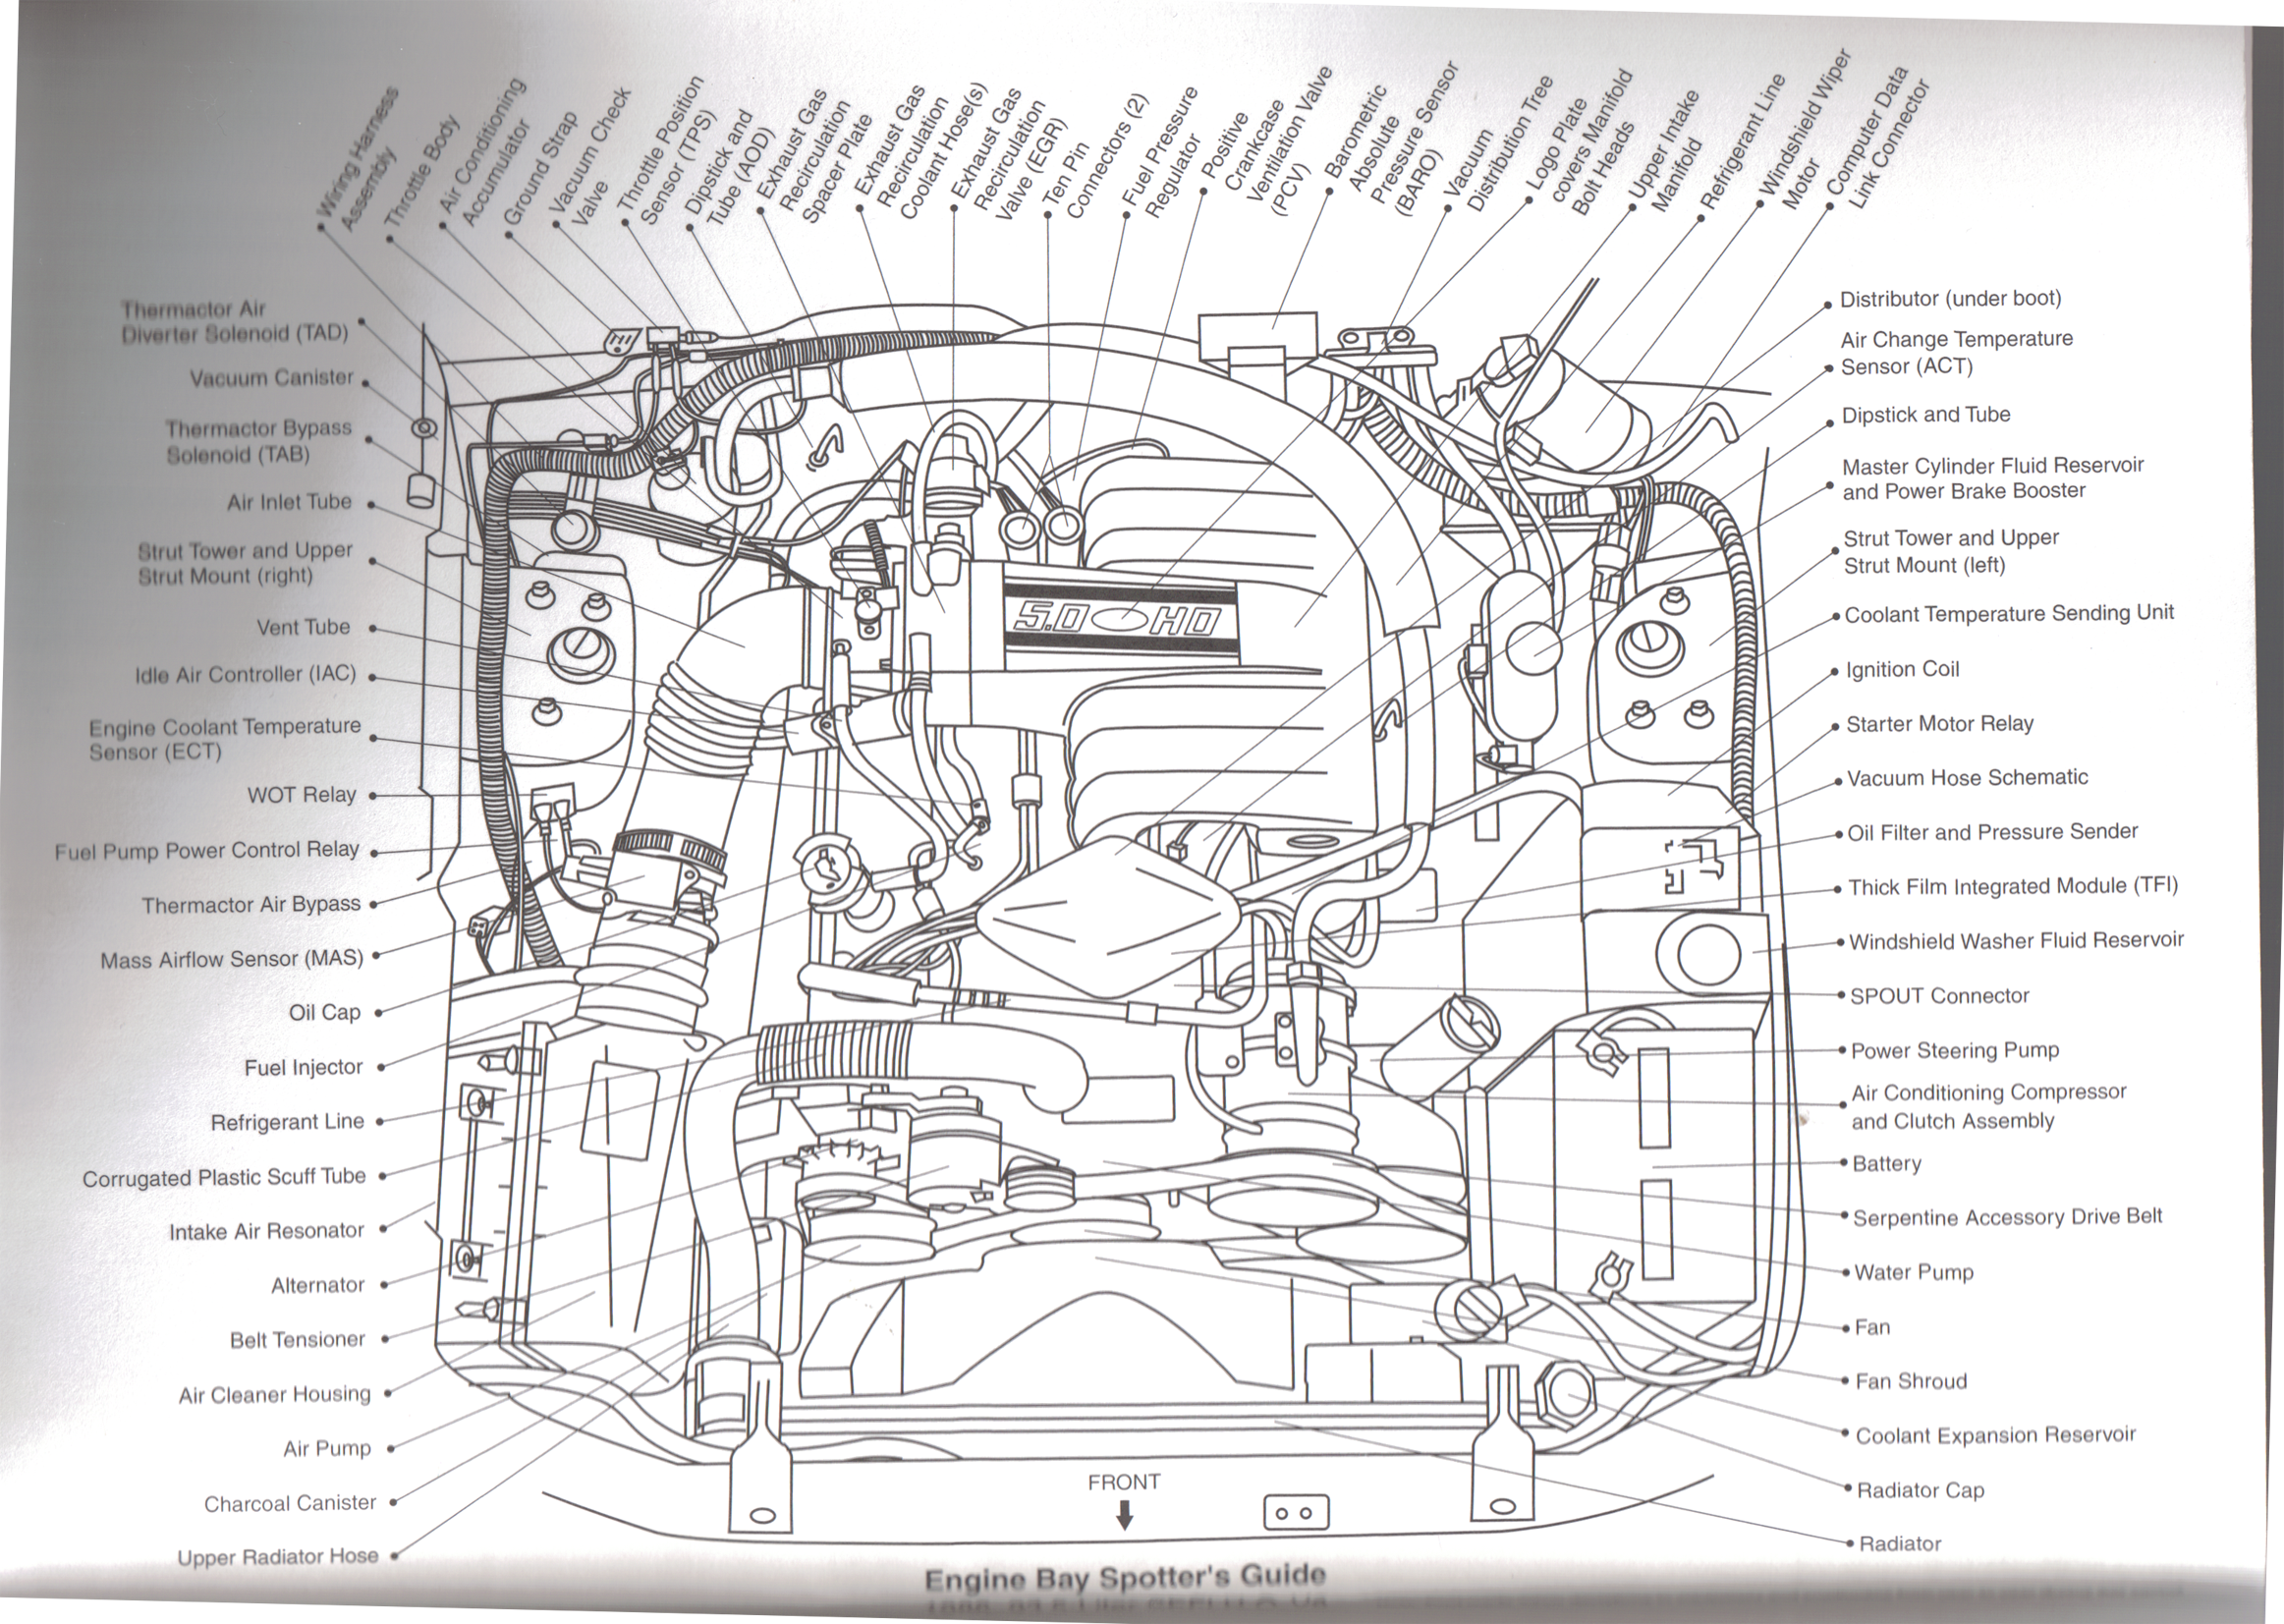 1992 Ford Mustang Engine Wiring Diagram Data E350 Everything You Need To Know About 1979 1993 Foxbody Mustangs 1968